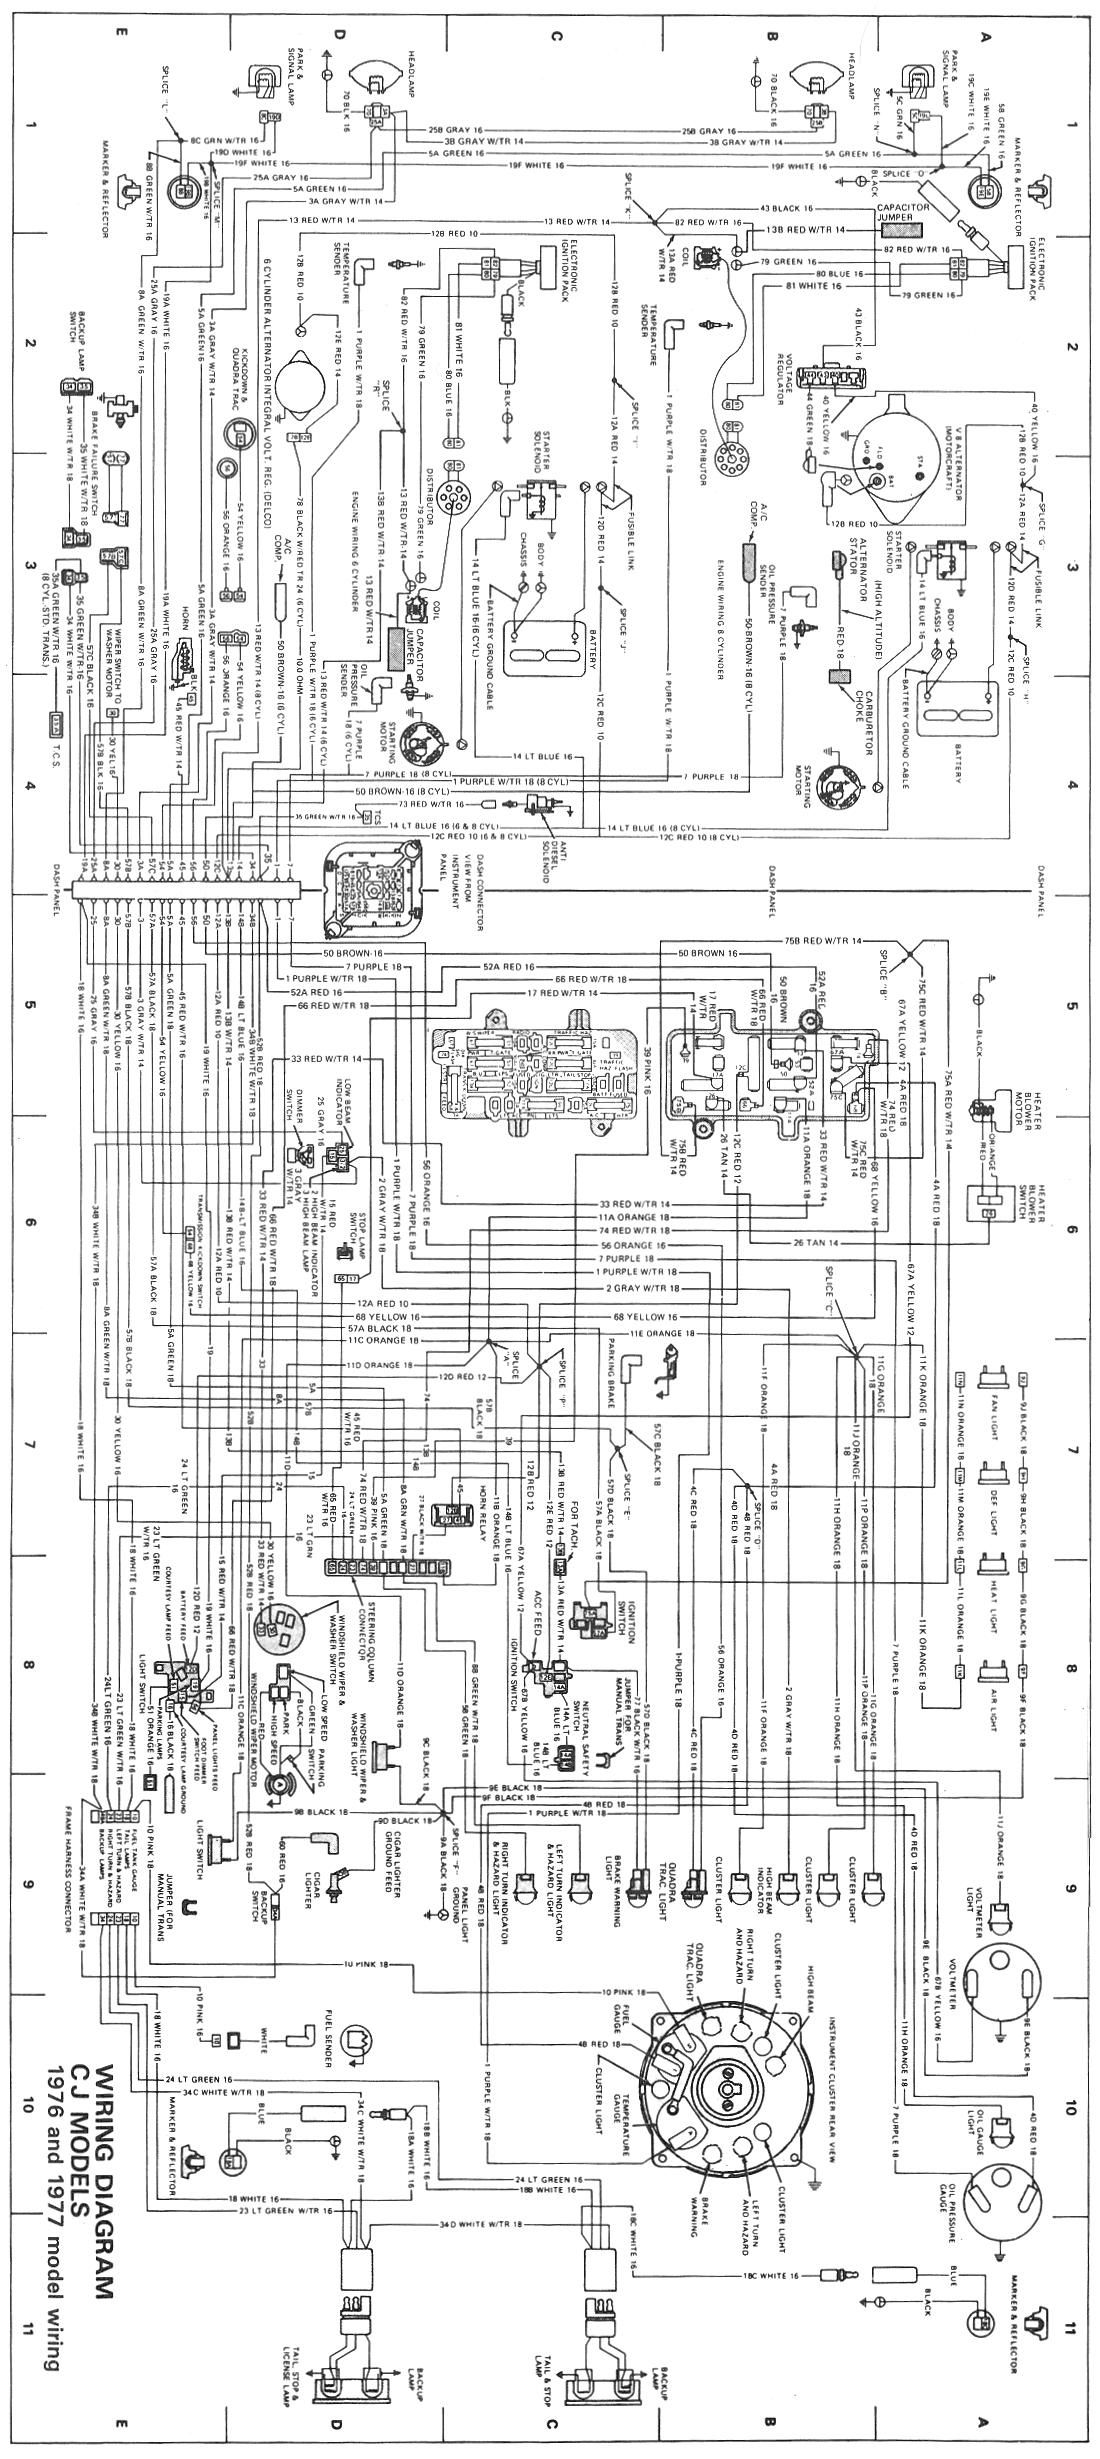 Cj Wiring Diagram 1 100 2 459 Pixels